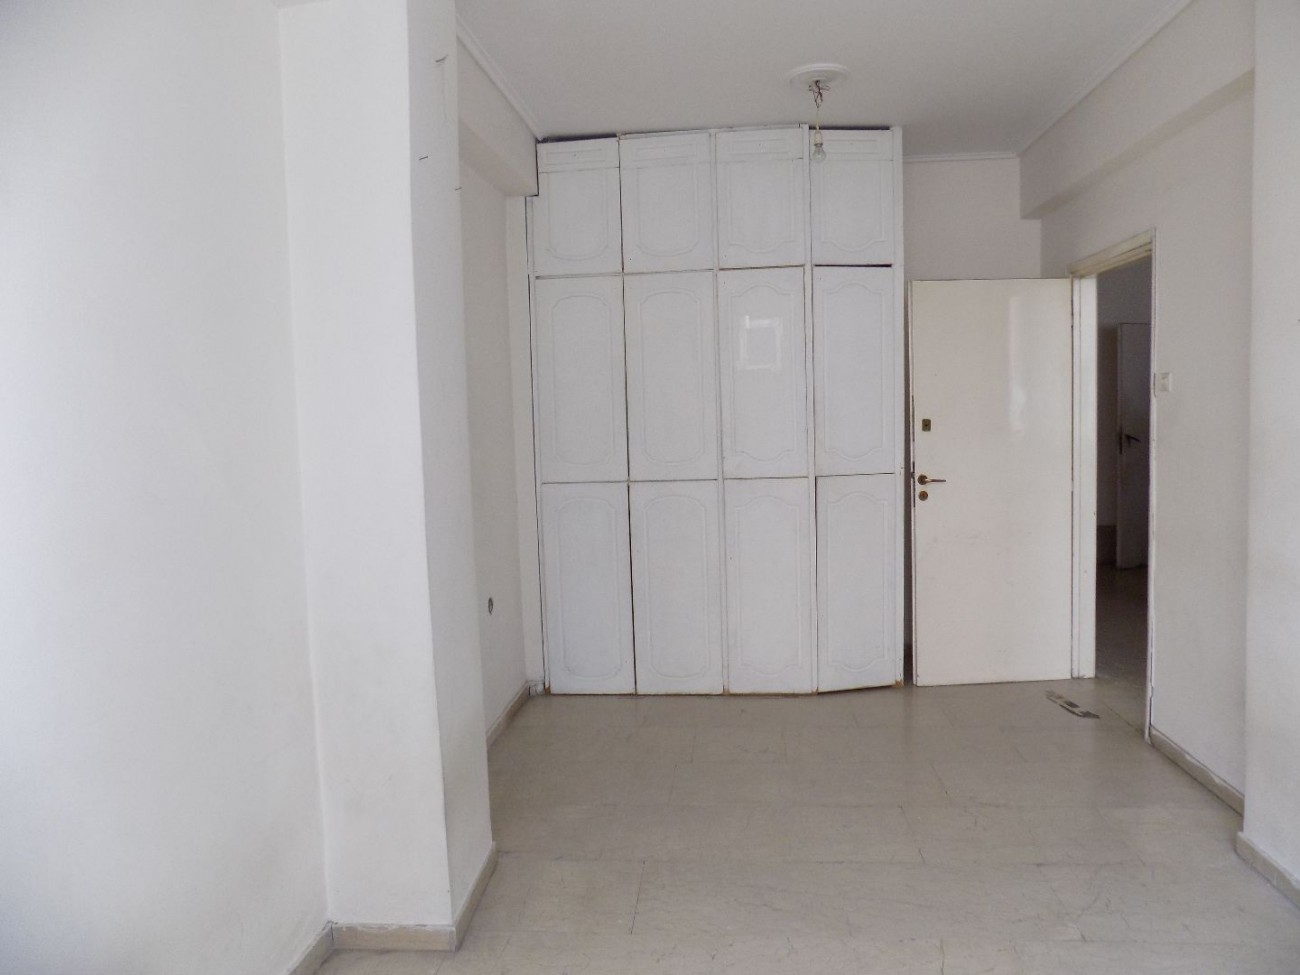 Office for Sale in Saint Konstantinos- Vathis Square, Athens City Center, Greece